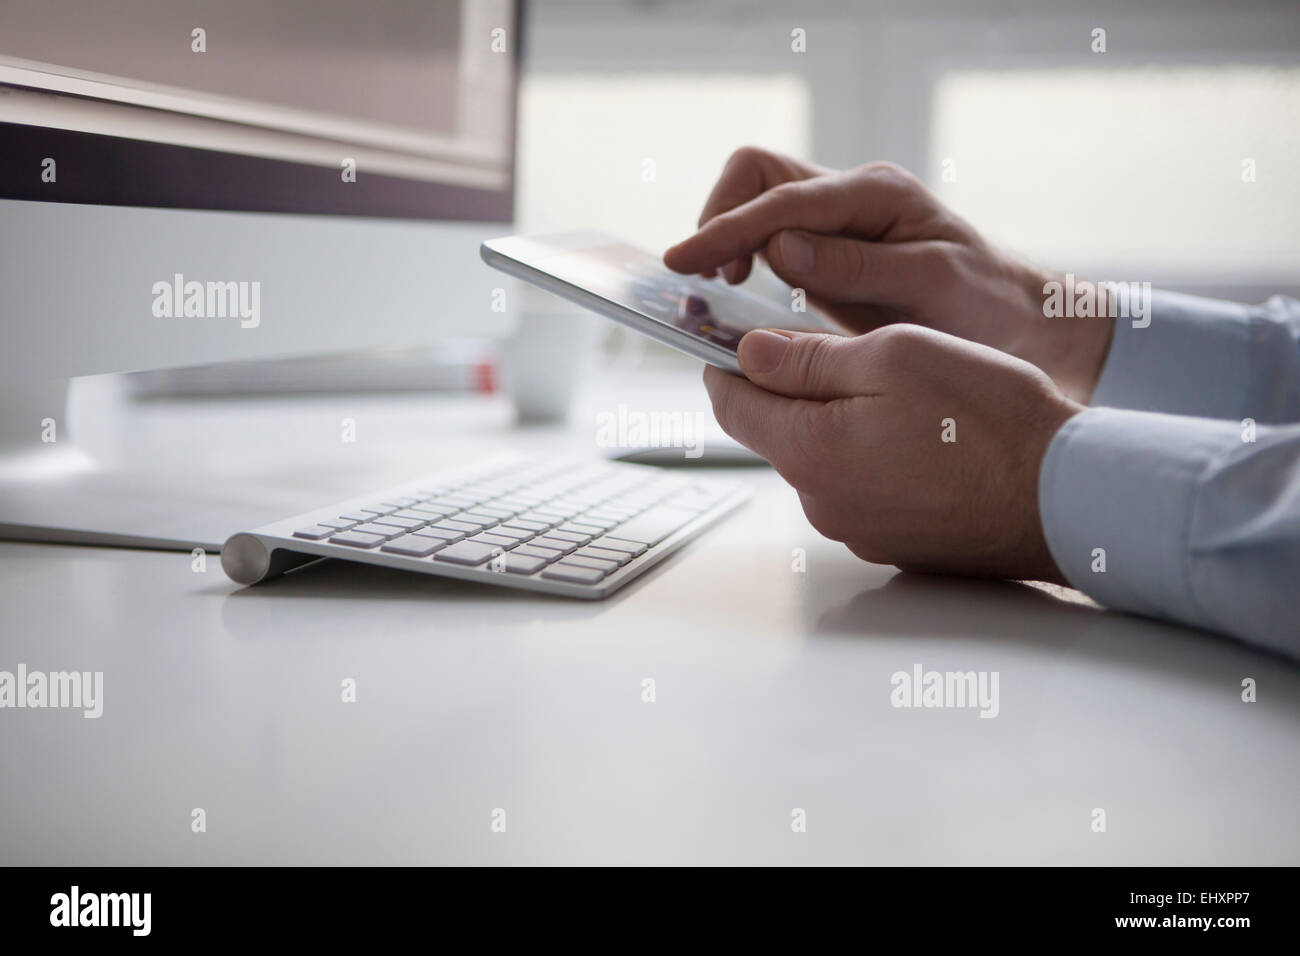 Man's hand typing on touchscreen of digital tablet - Stock Image